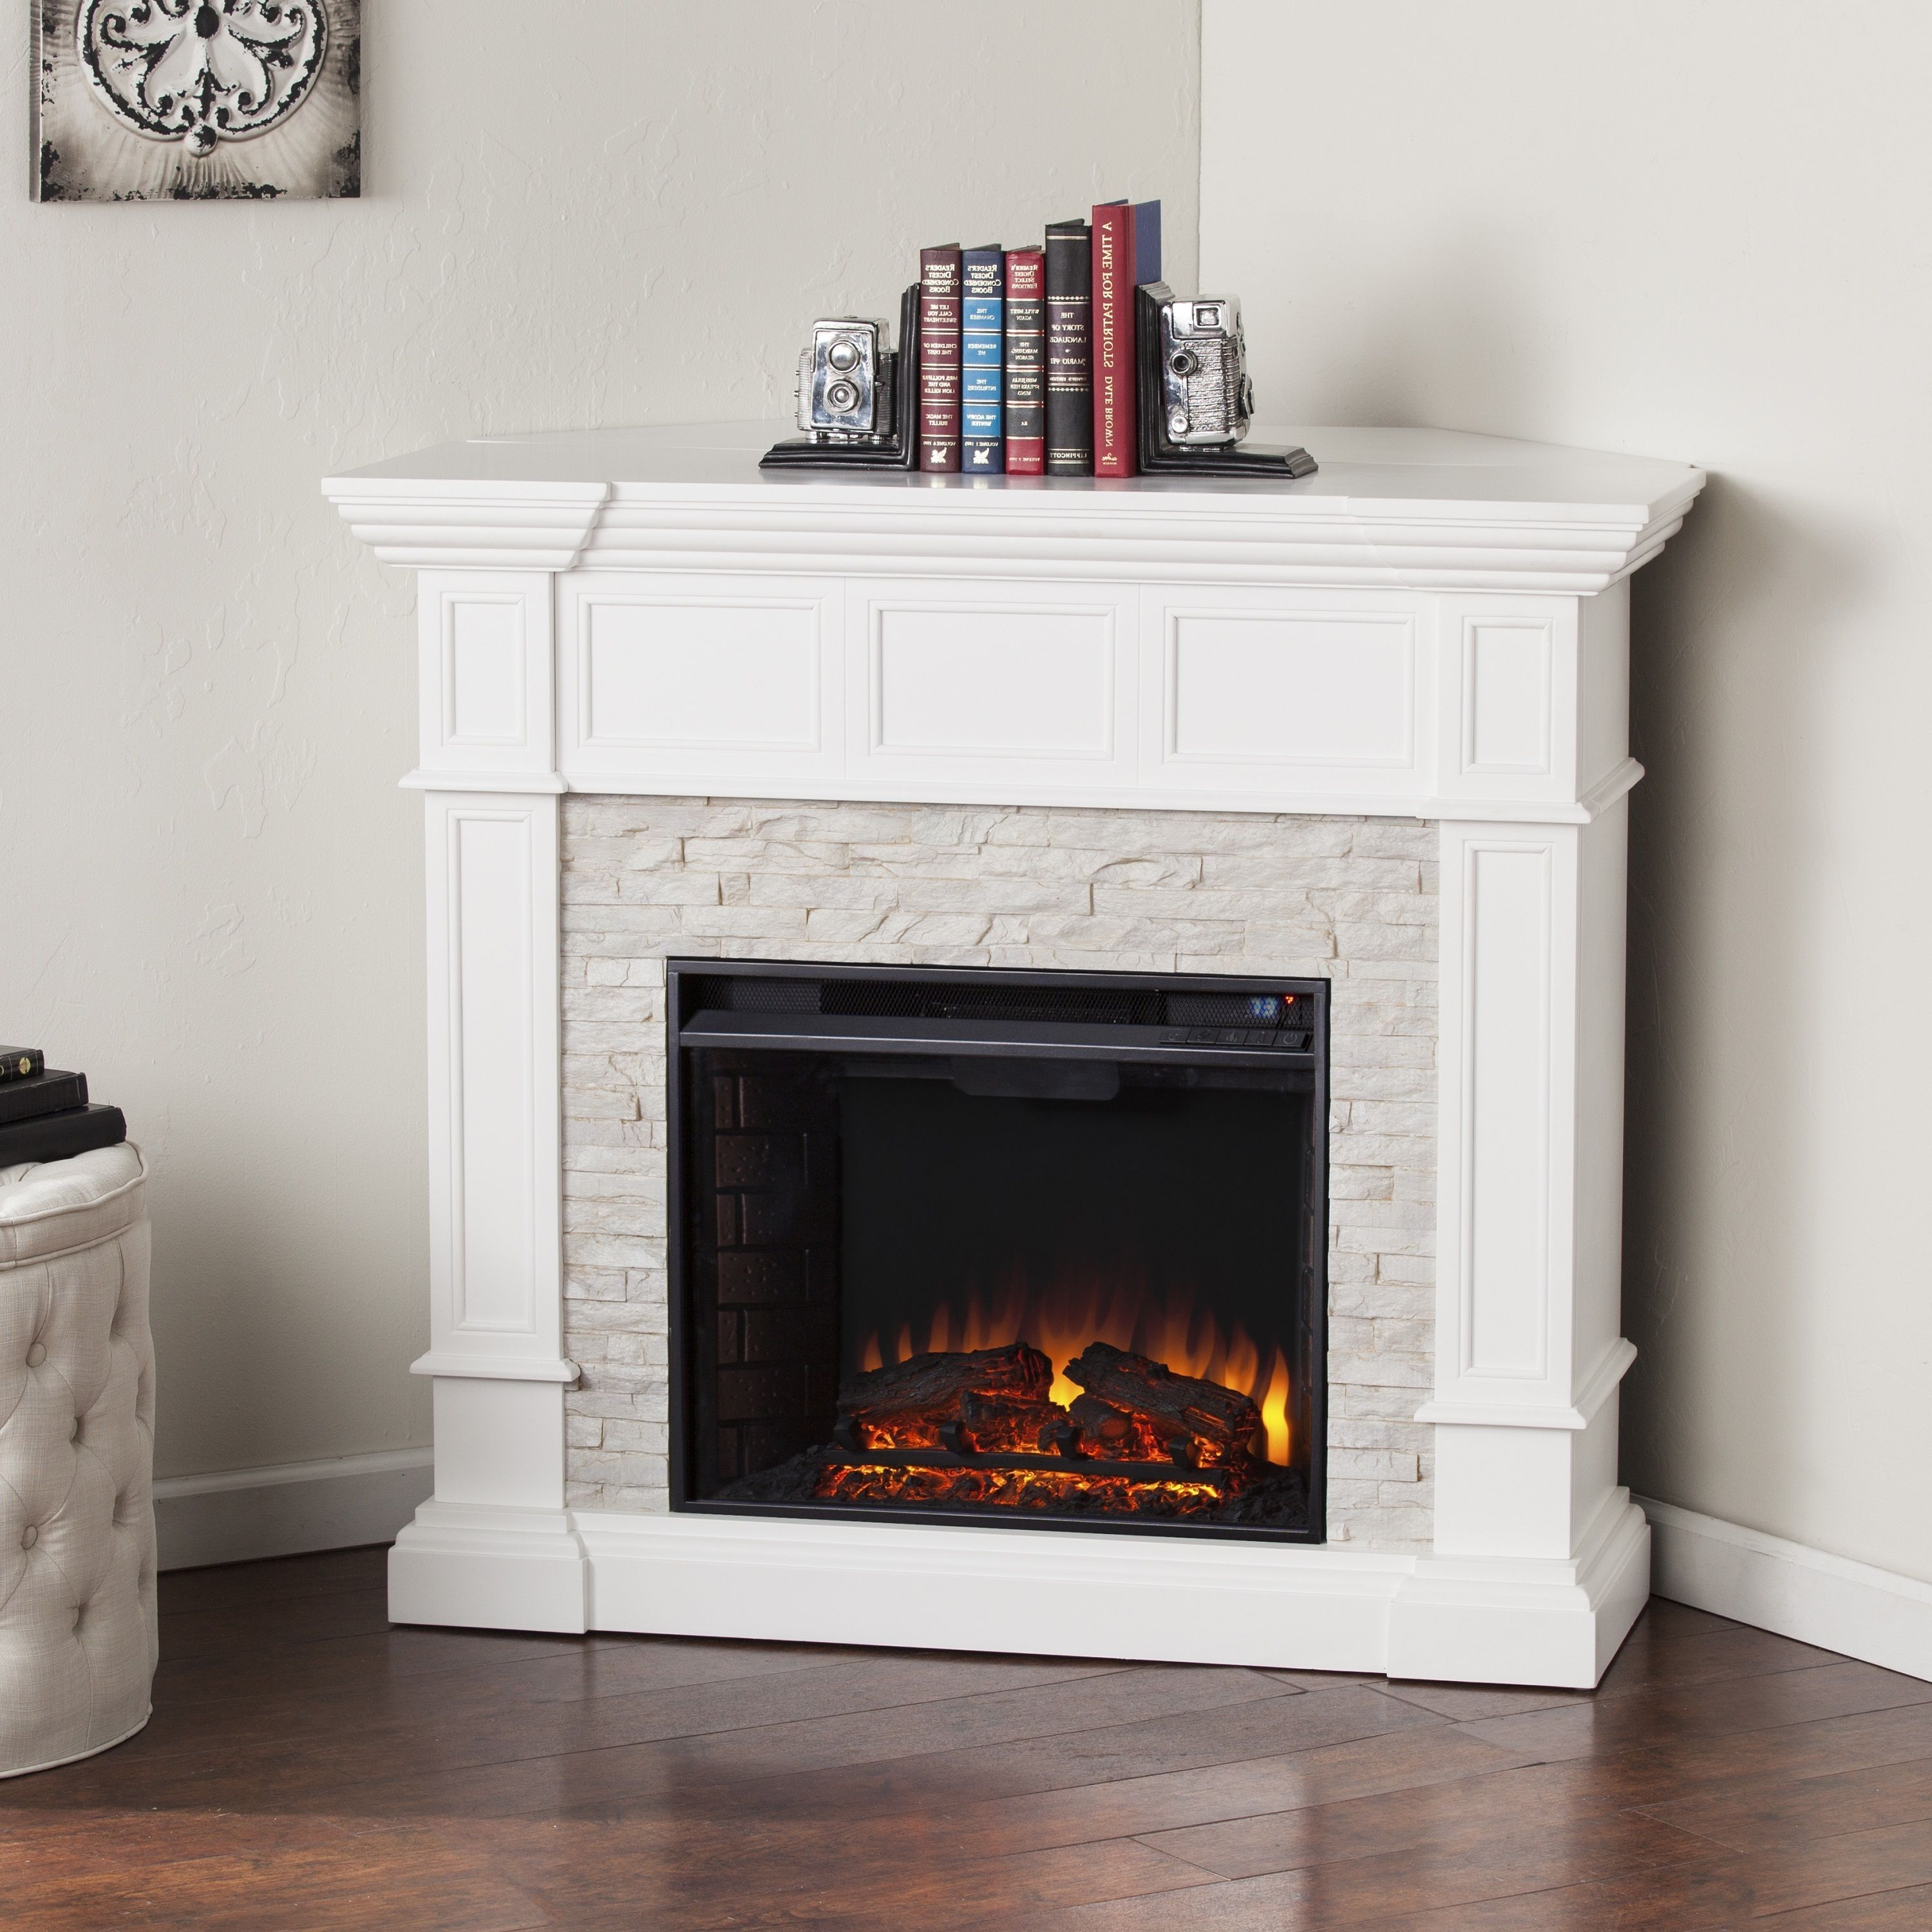 ltd photo corner fireplace universal in wall pty product gas jetmaster the